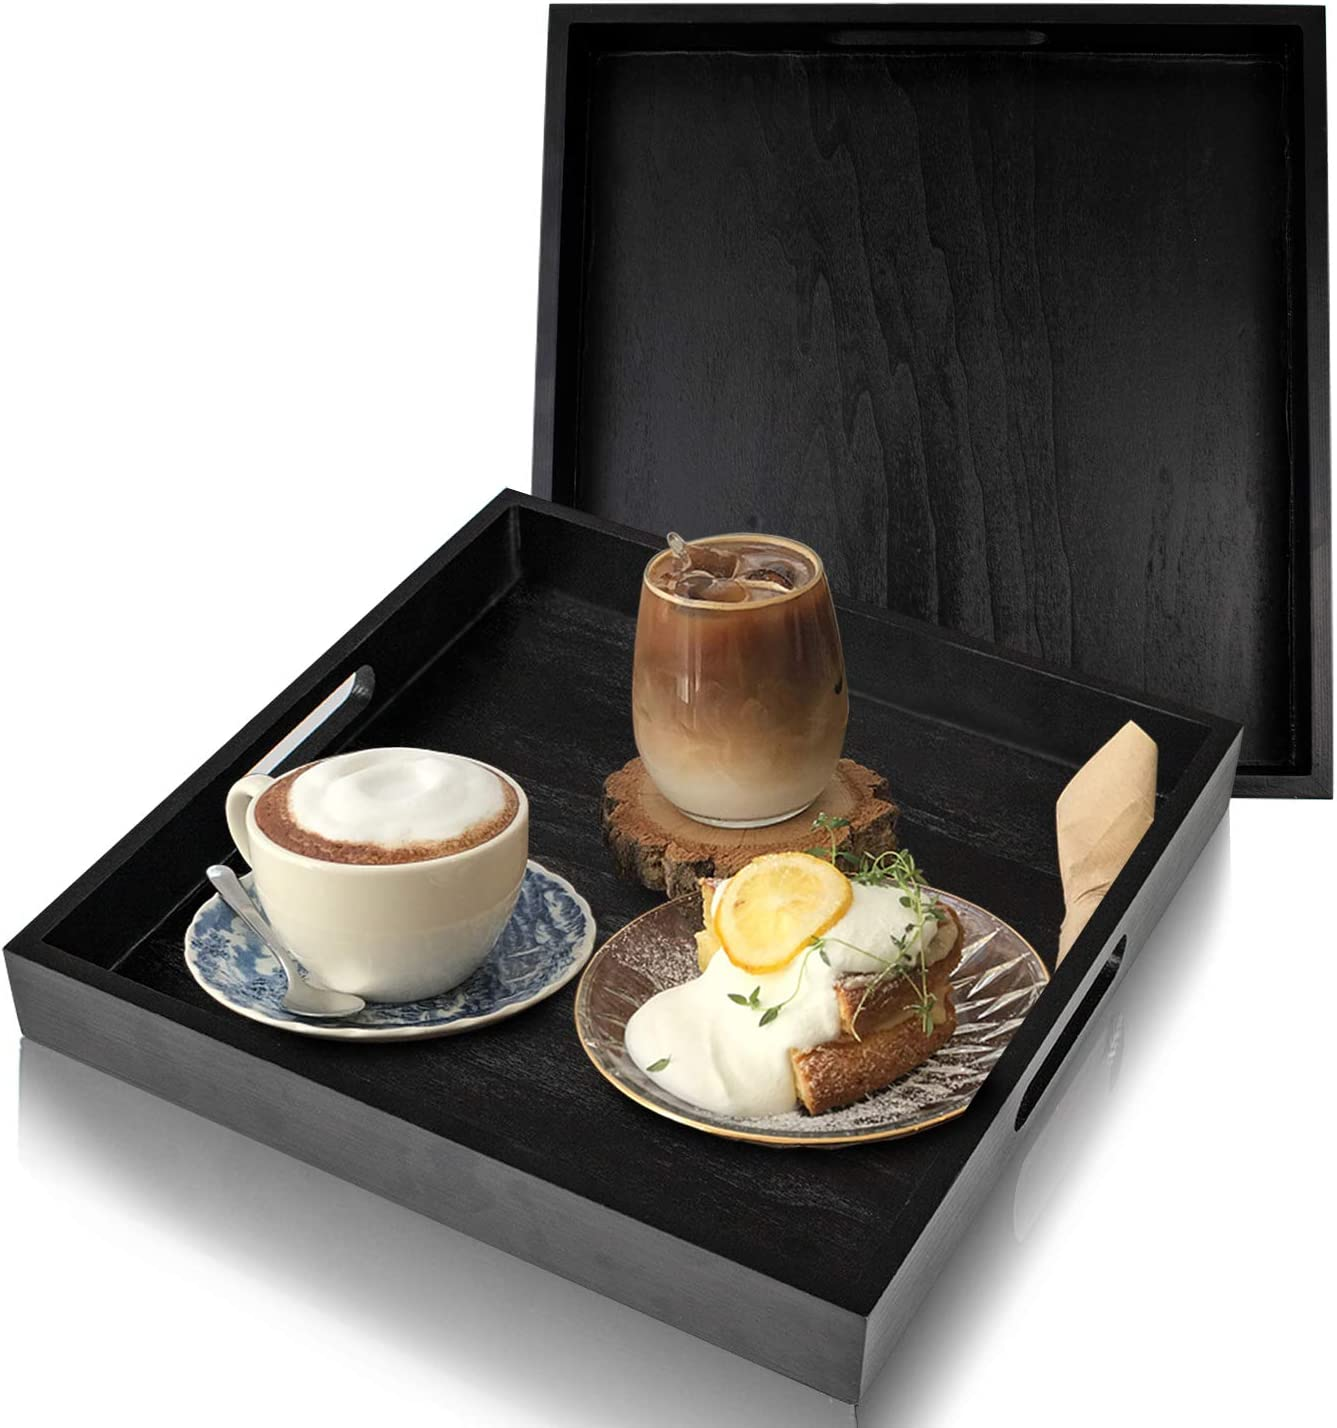 FOVERN1 Serving Tray, Set of 2 Wooden Serving Trays with Handle, Ideal for Serving Breakfast, Coffee, Dinner, Wine, Appetizer, Bar, and Food, Party or Display Use - Black